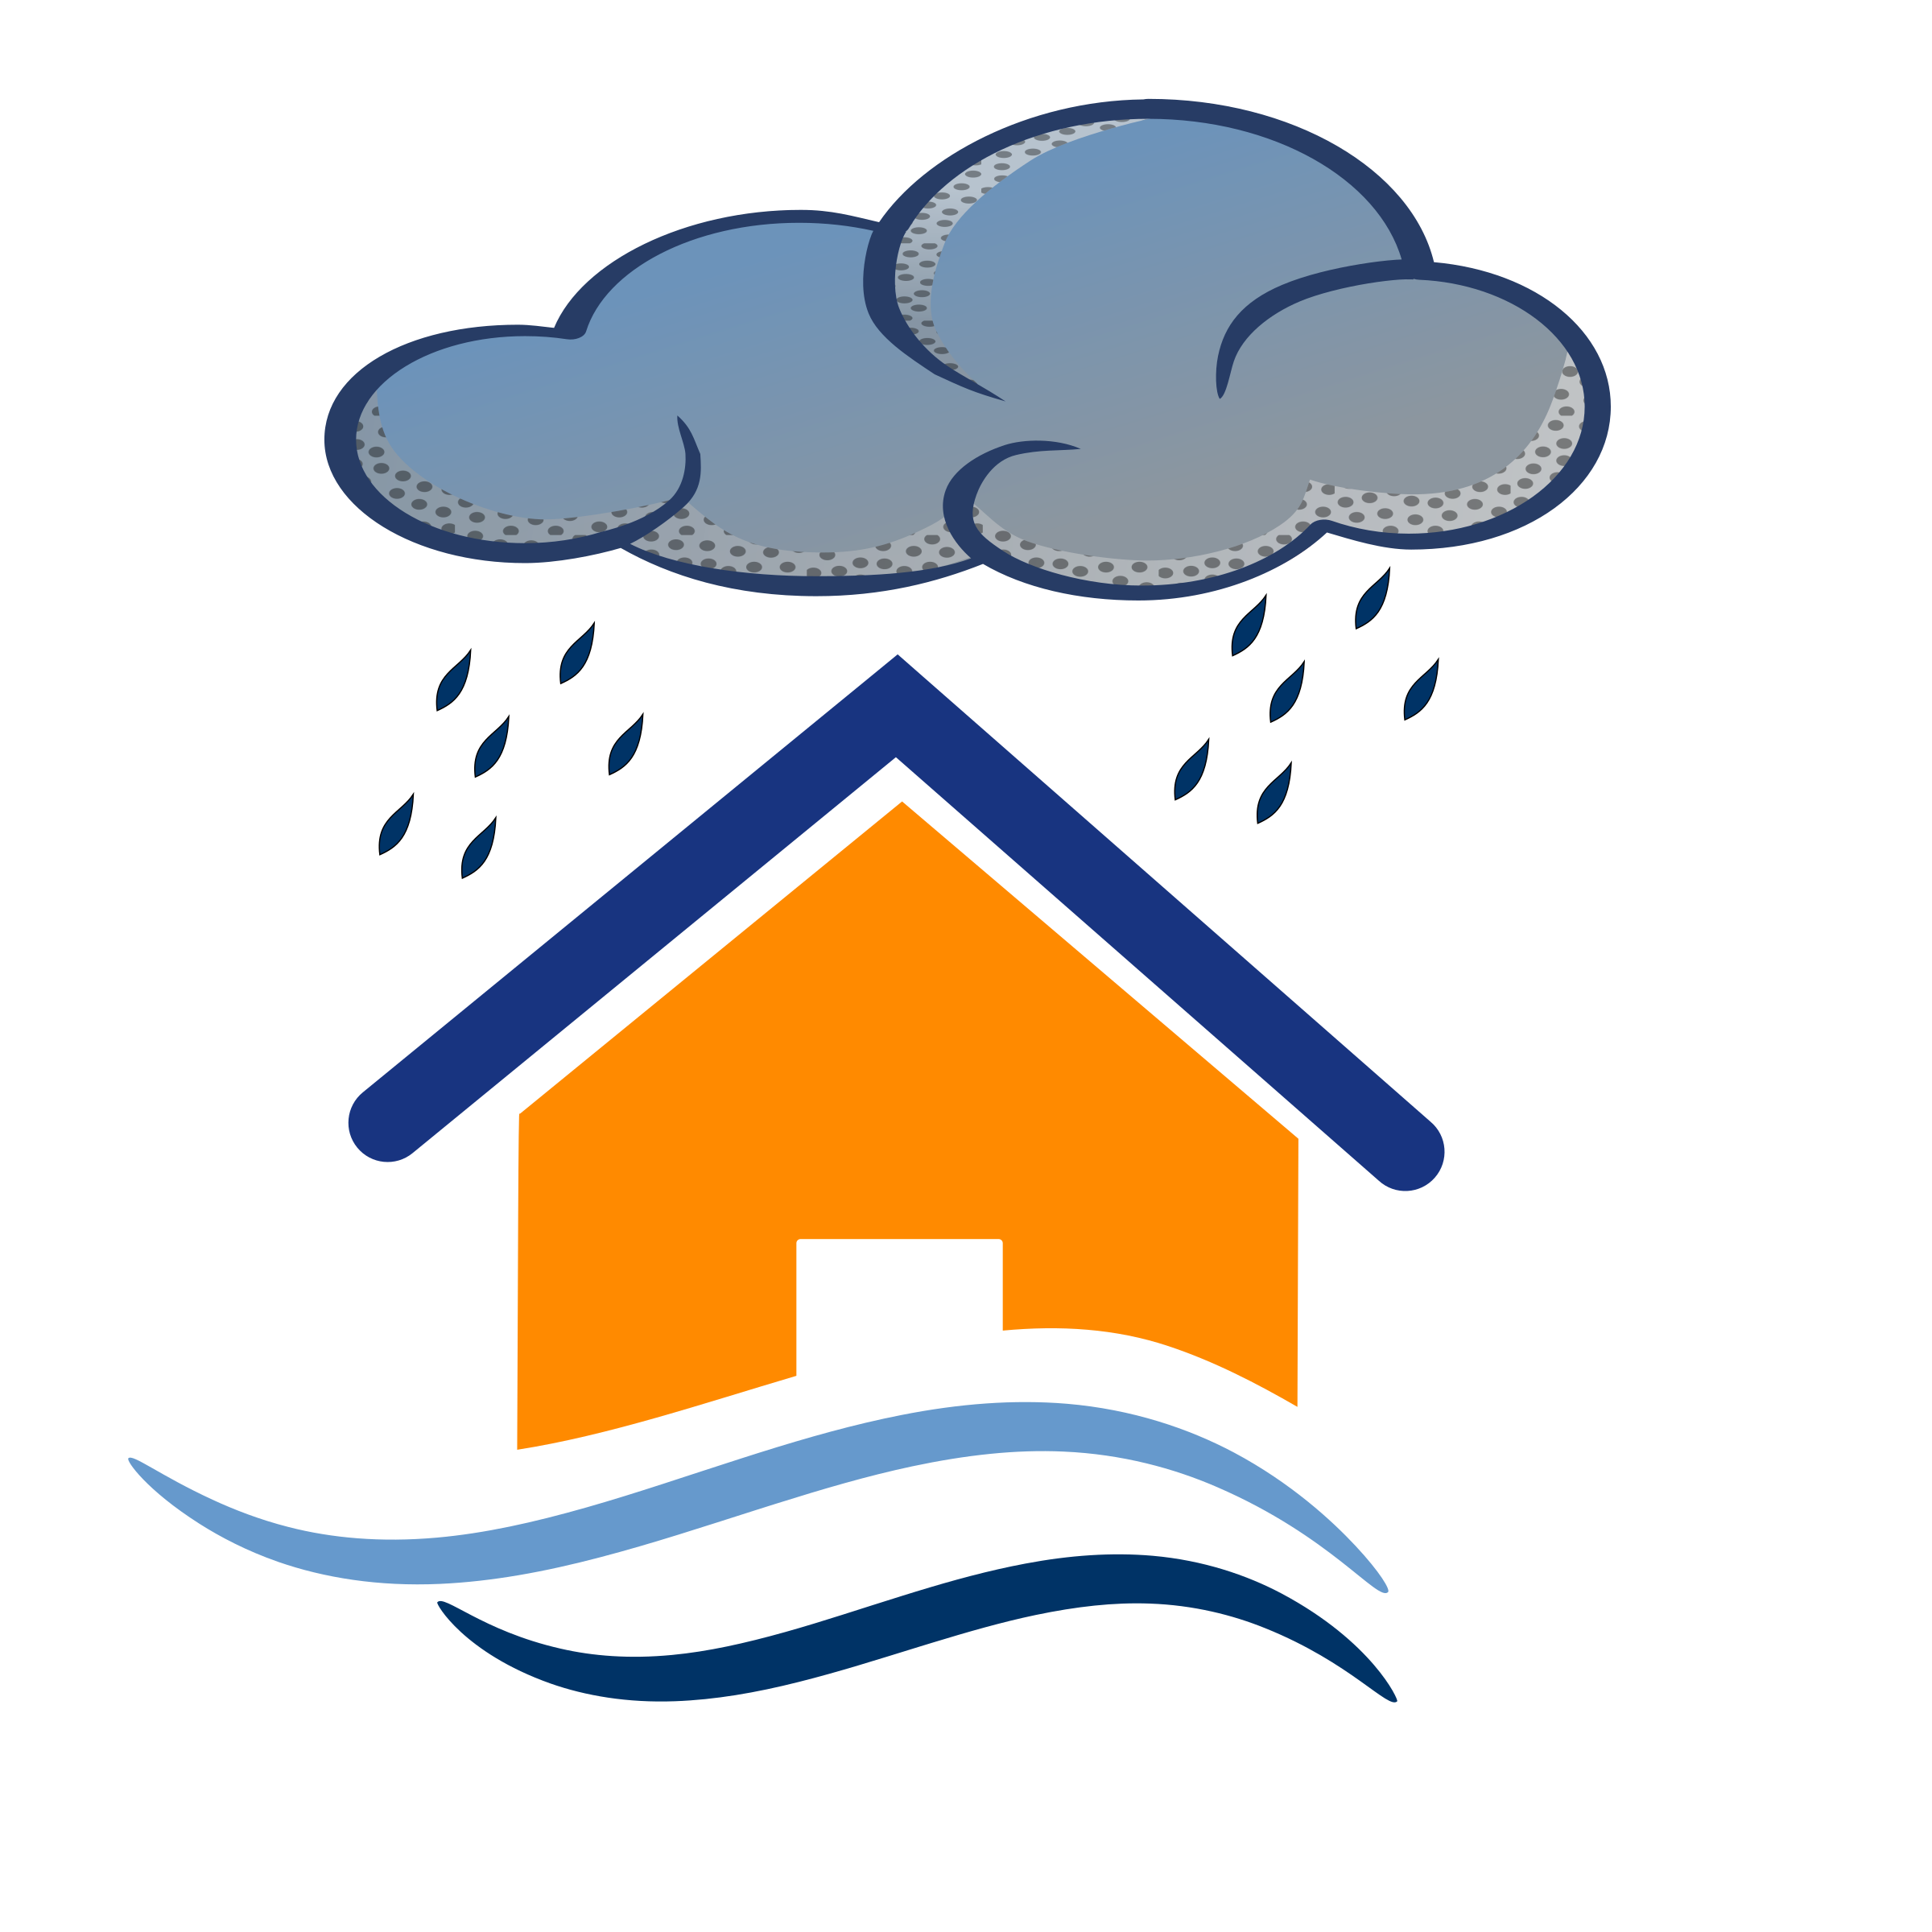 Clipart home economic. Rainfall free download best